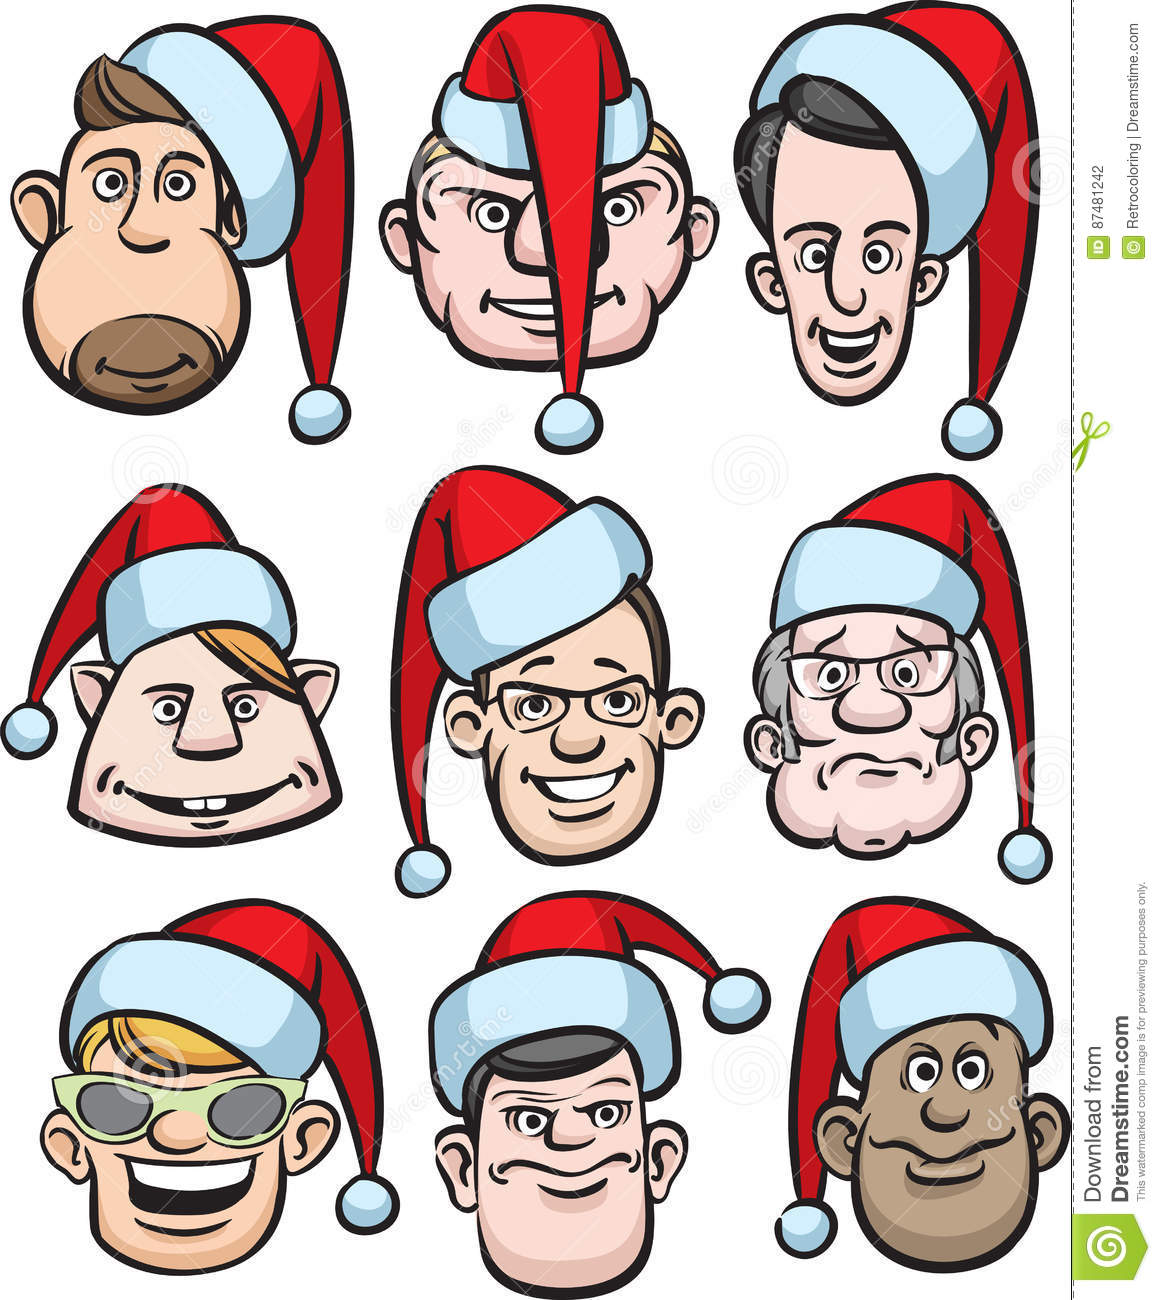 3e771e1edb0 Christmas cartoon style vector illustration  easy-edit layered vector EPS10  file scalable to any size without quality loss.